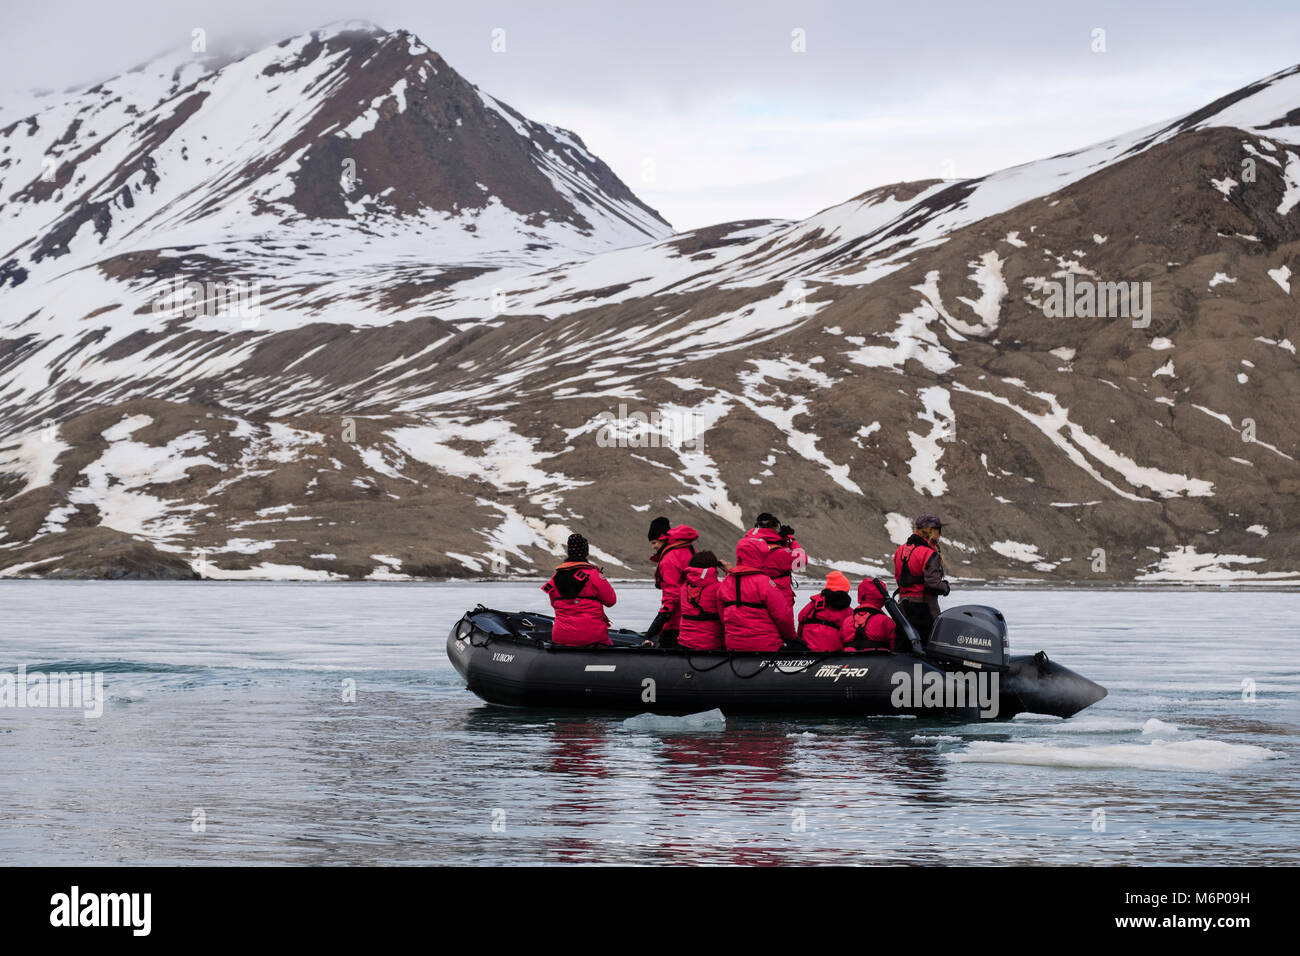 G Expedition cruise passengers in a Zodiac dinghy watching for wildlife off coast of Spitsbergen island, Svalbard, - Stock Image